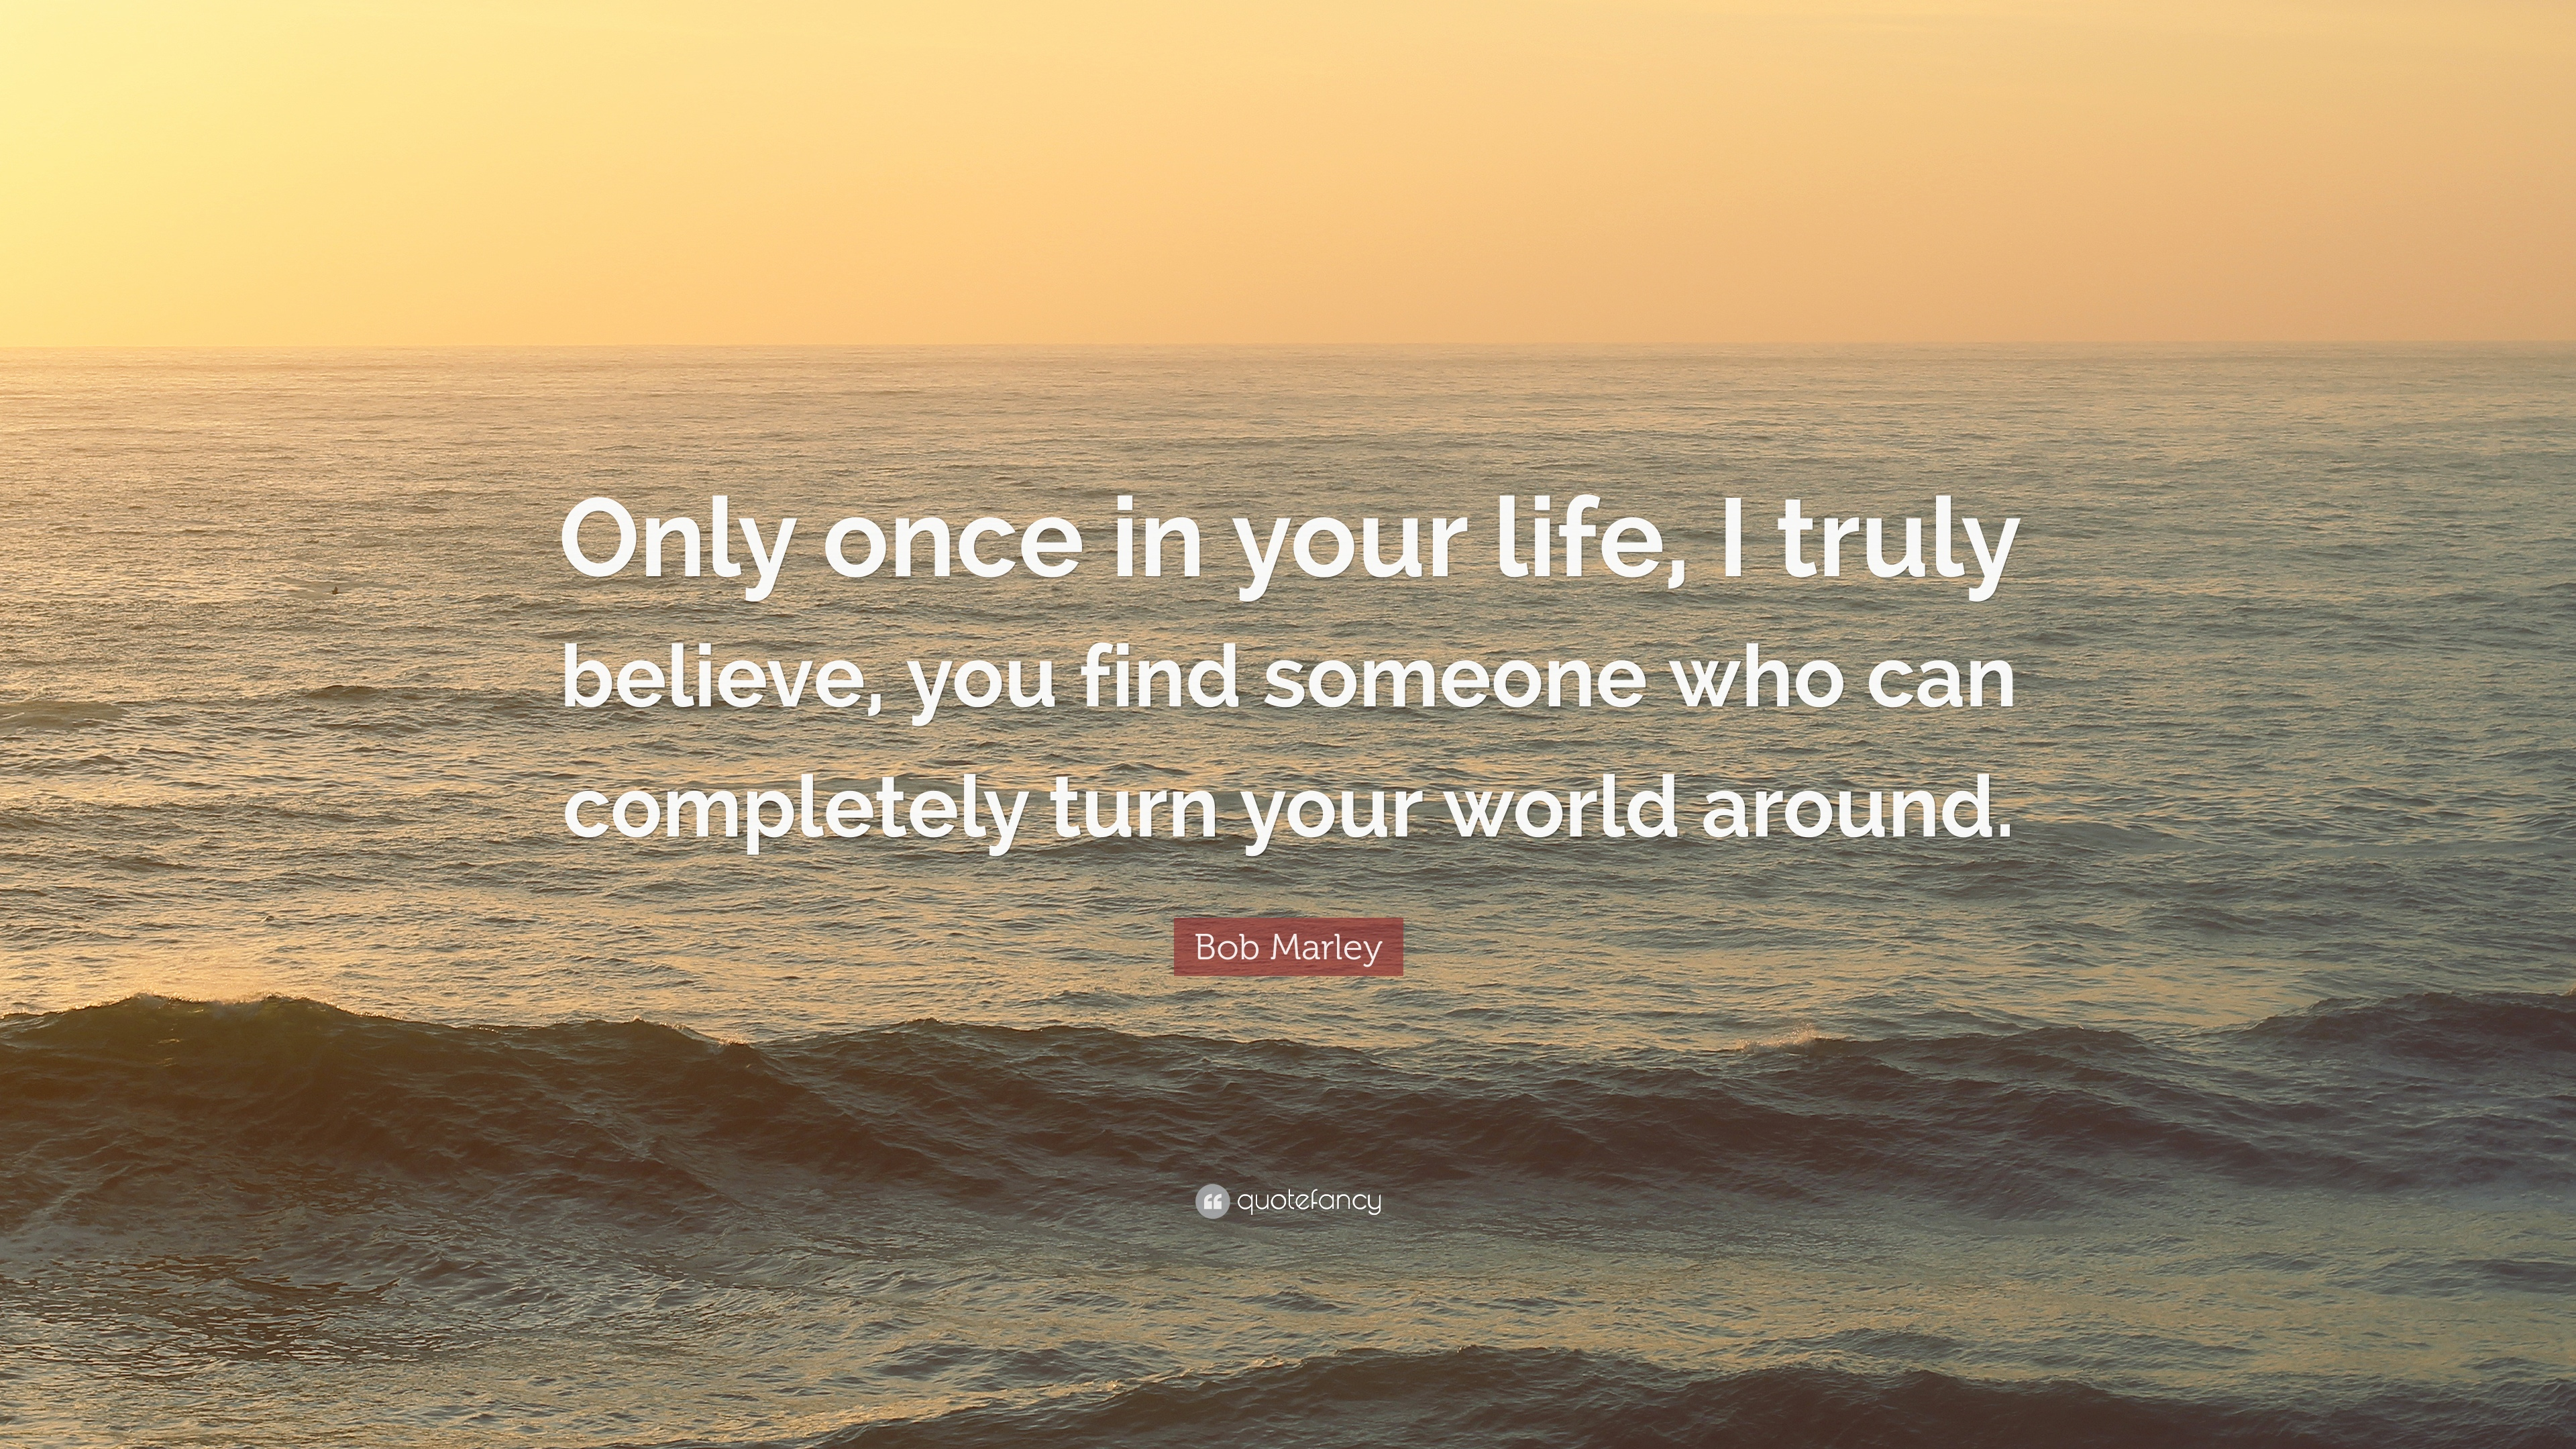 Bob Marley Quote: Only once in your life, I truly believe